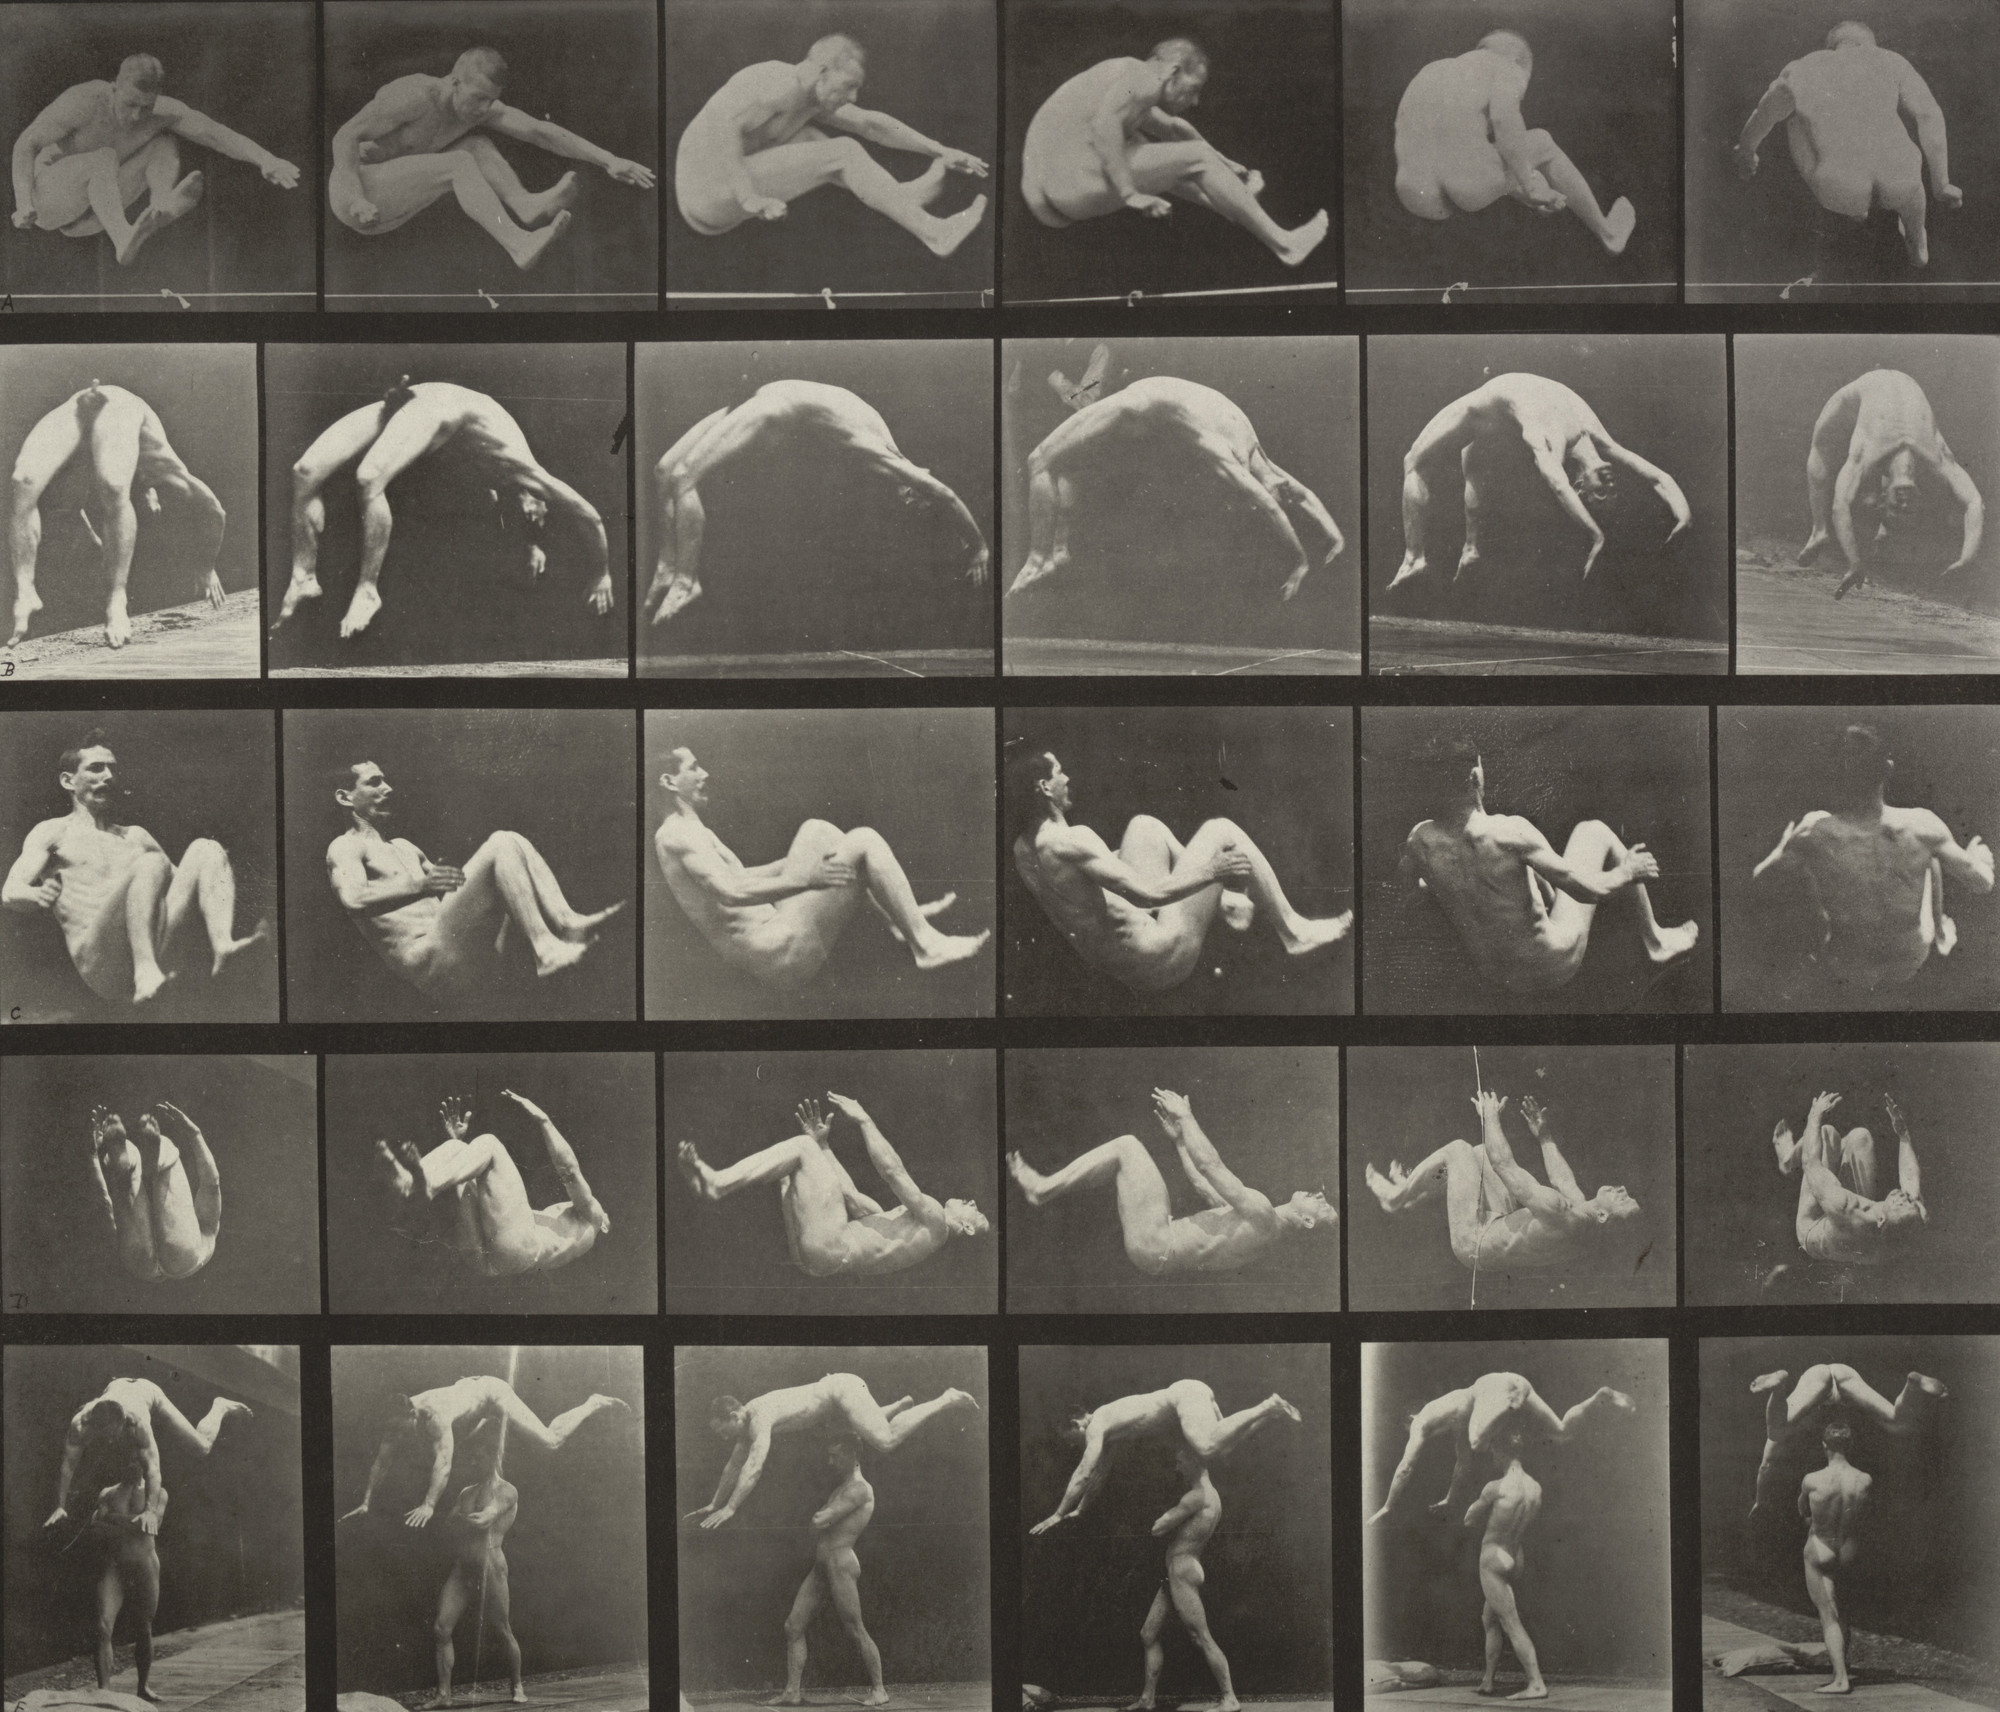 Eadweard J. Muybridge. Jumping; Handspring; Somersault; Springing over a Man's Back: Plate 522 from Animal Locomotion (1887). 1884-86